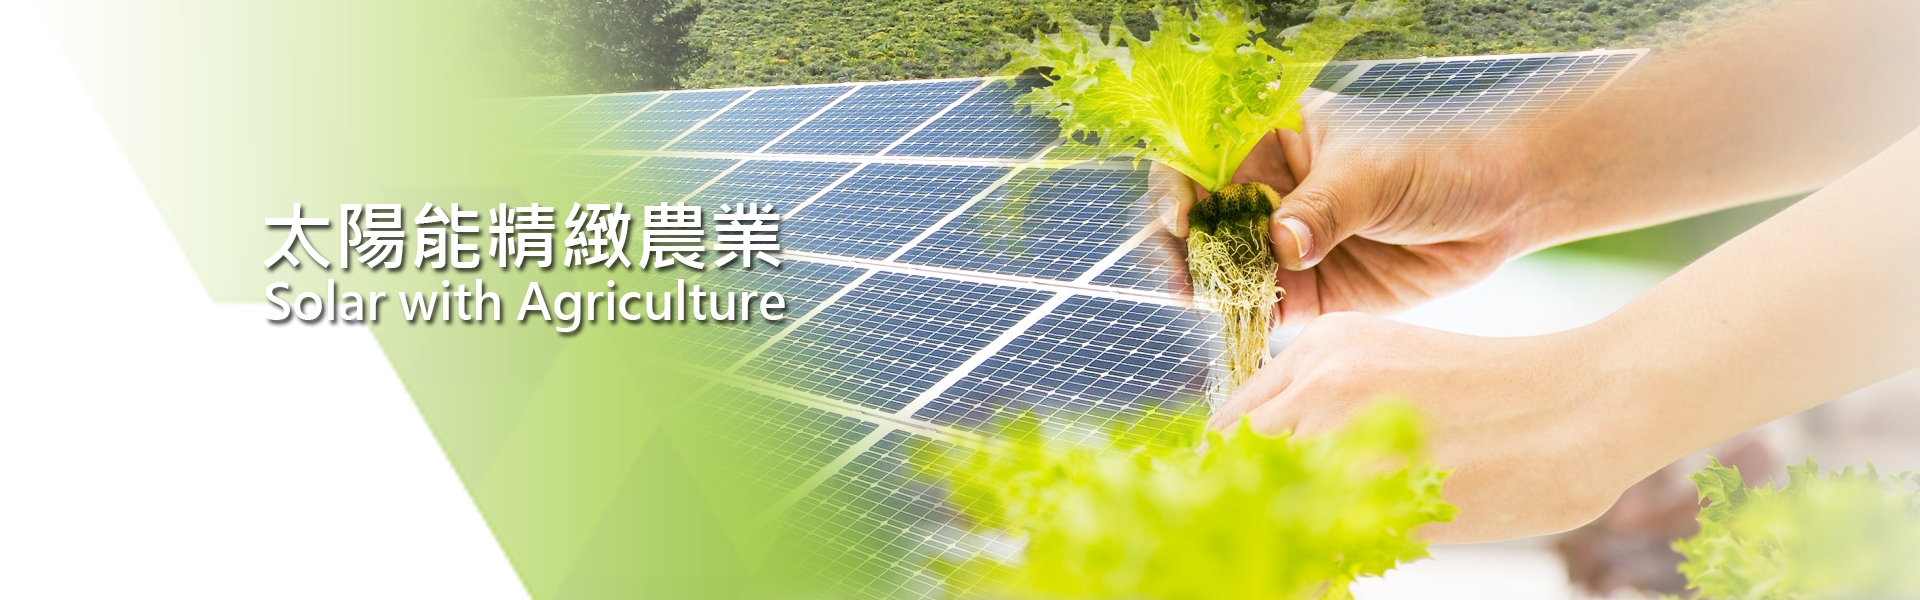 Solar with Agriculture